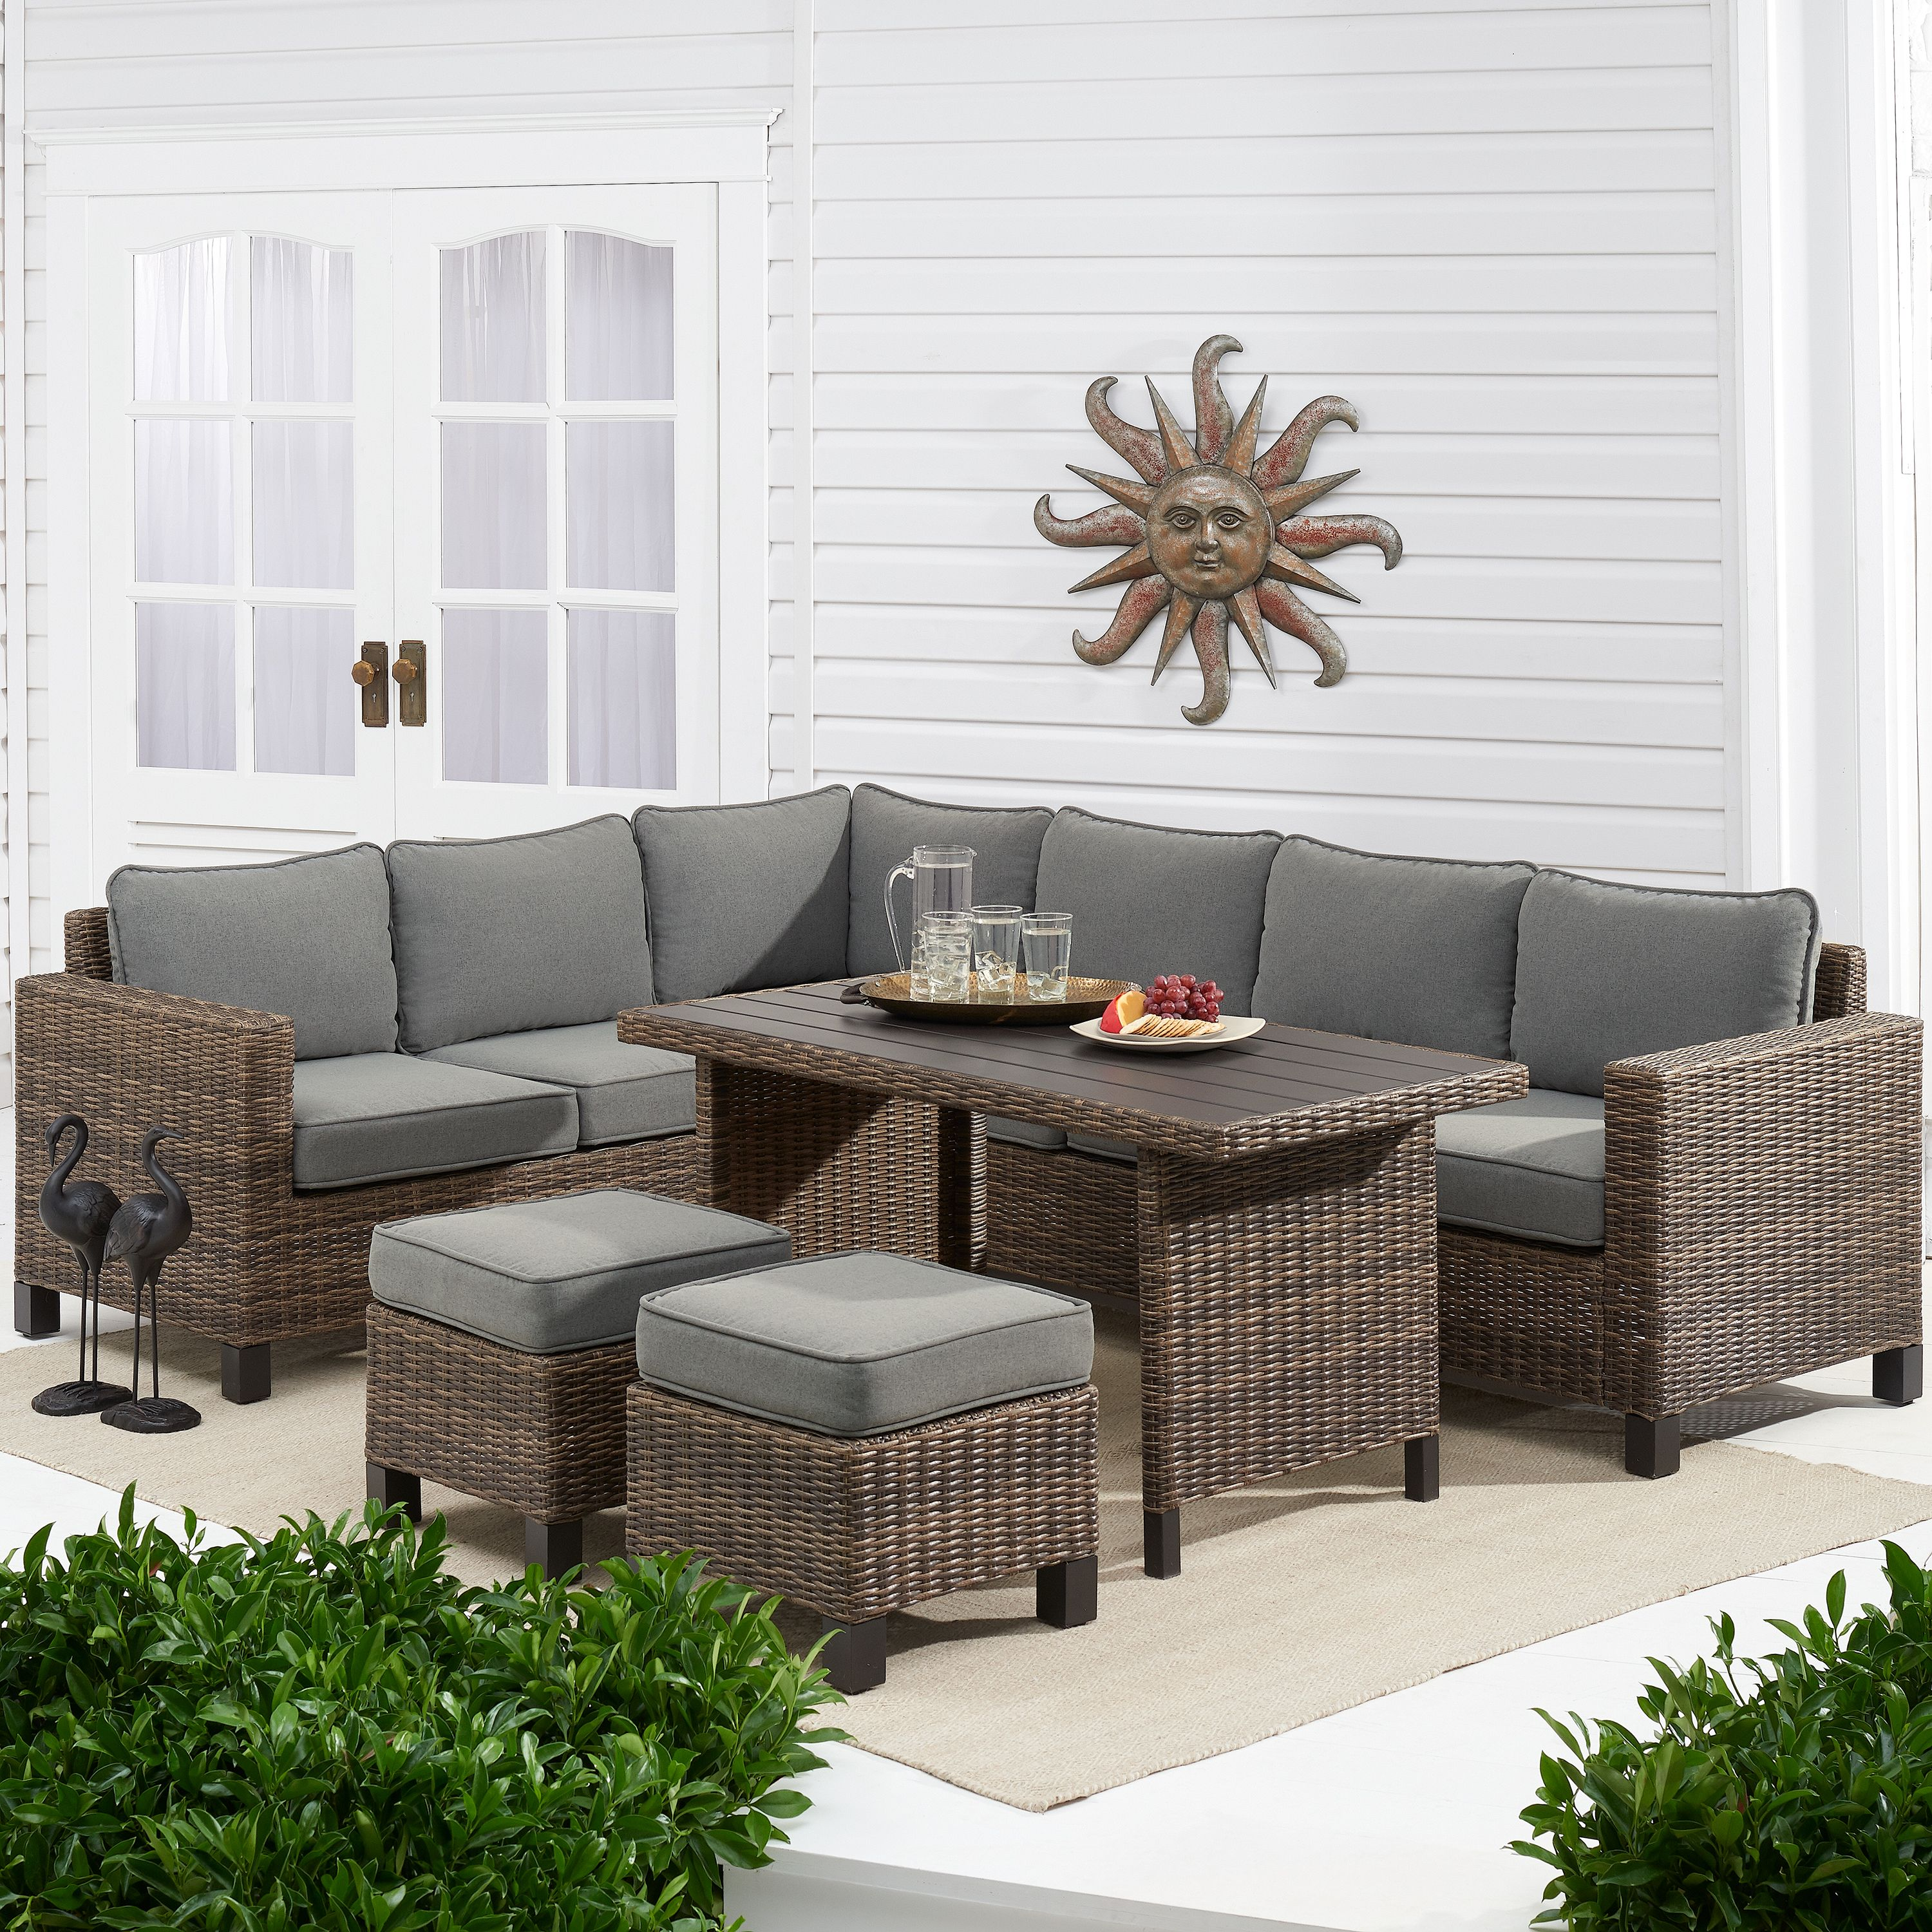 Spring -haves Prep Outdoor Space